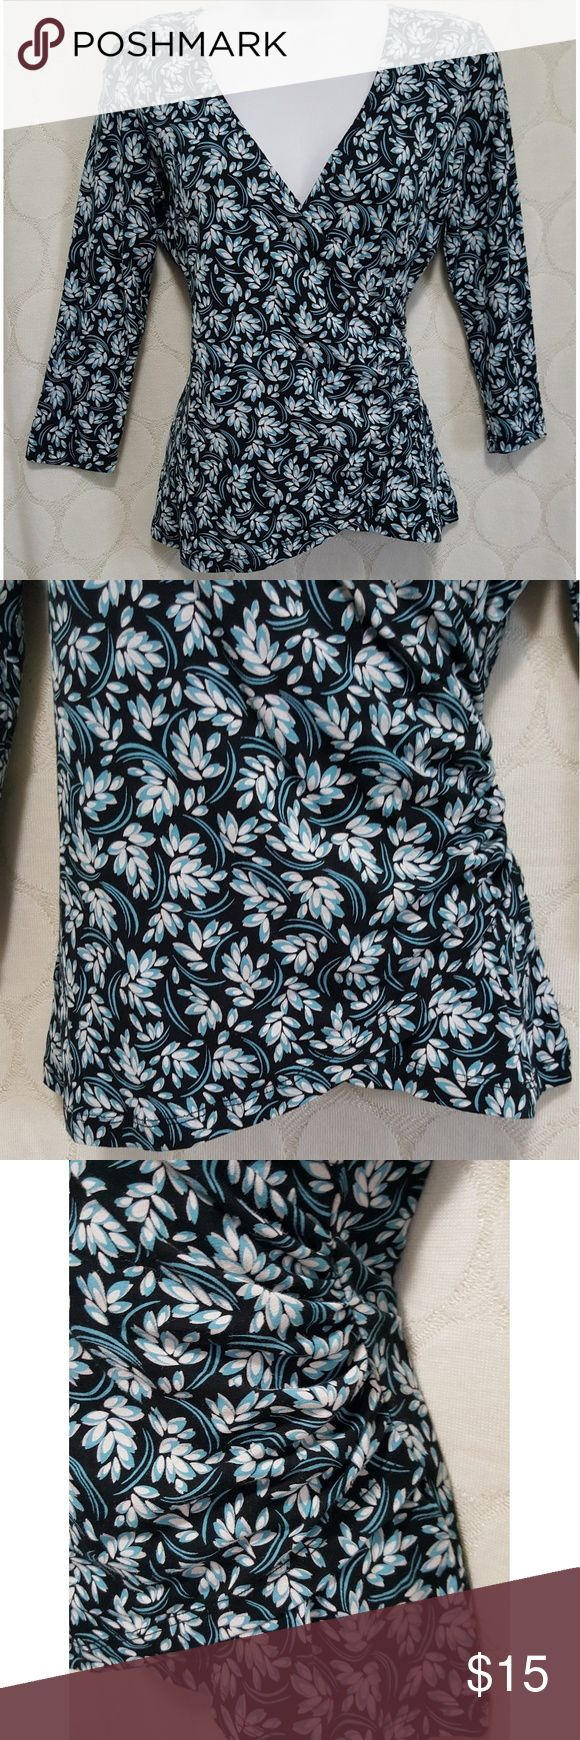 Like New Anne Taylor Loft Long Sleeve Shirt Like New Anne Taylor Loft Long Sleeve Shirt. No flaws, perfect condition. Scoop bottom front detail and ruched side. Size XS. Smoke free home!! Ann Taylor Tops Blouses